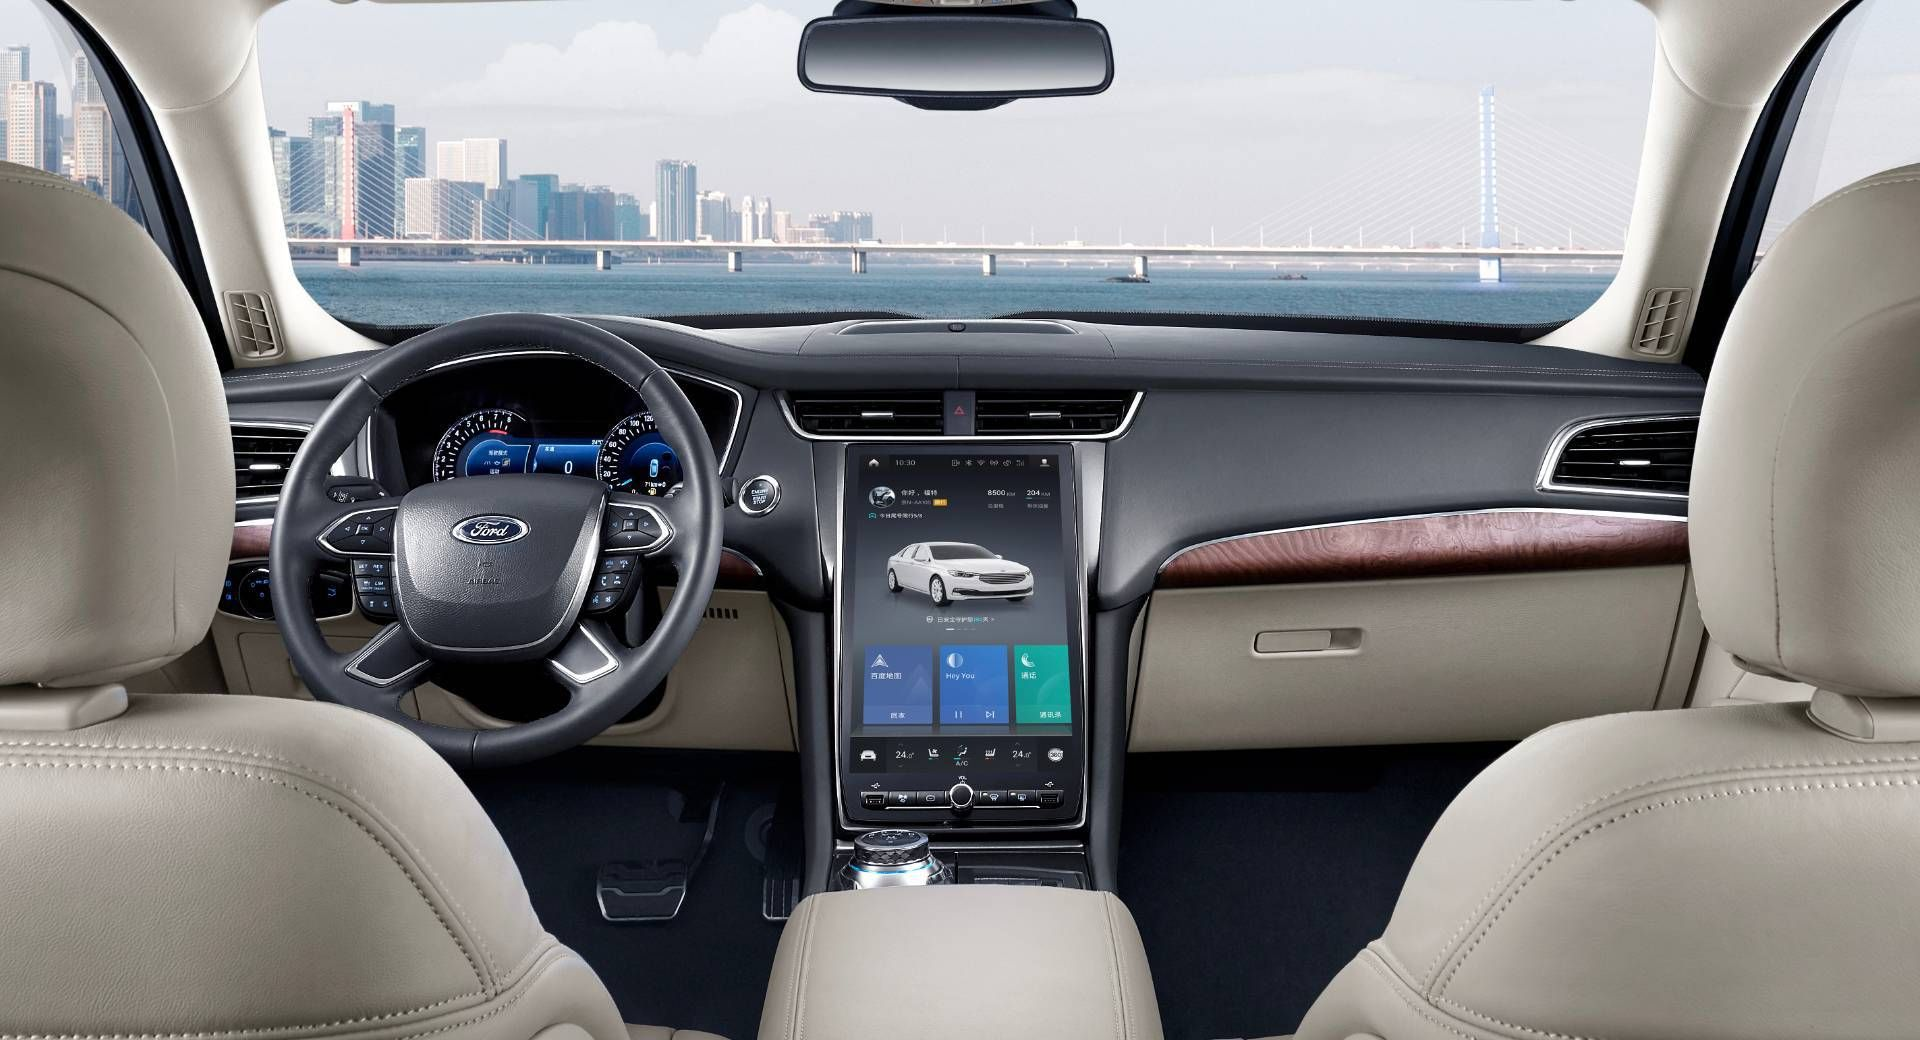 2020 Ford Taurus Vignale Boasts 12 8 Inch Tablet Touchscreen In China Changan China Ford Fordtaurus Infotainment High End Cars Taurus Ford Explorer Sport